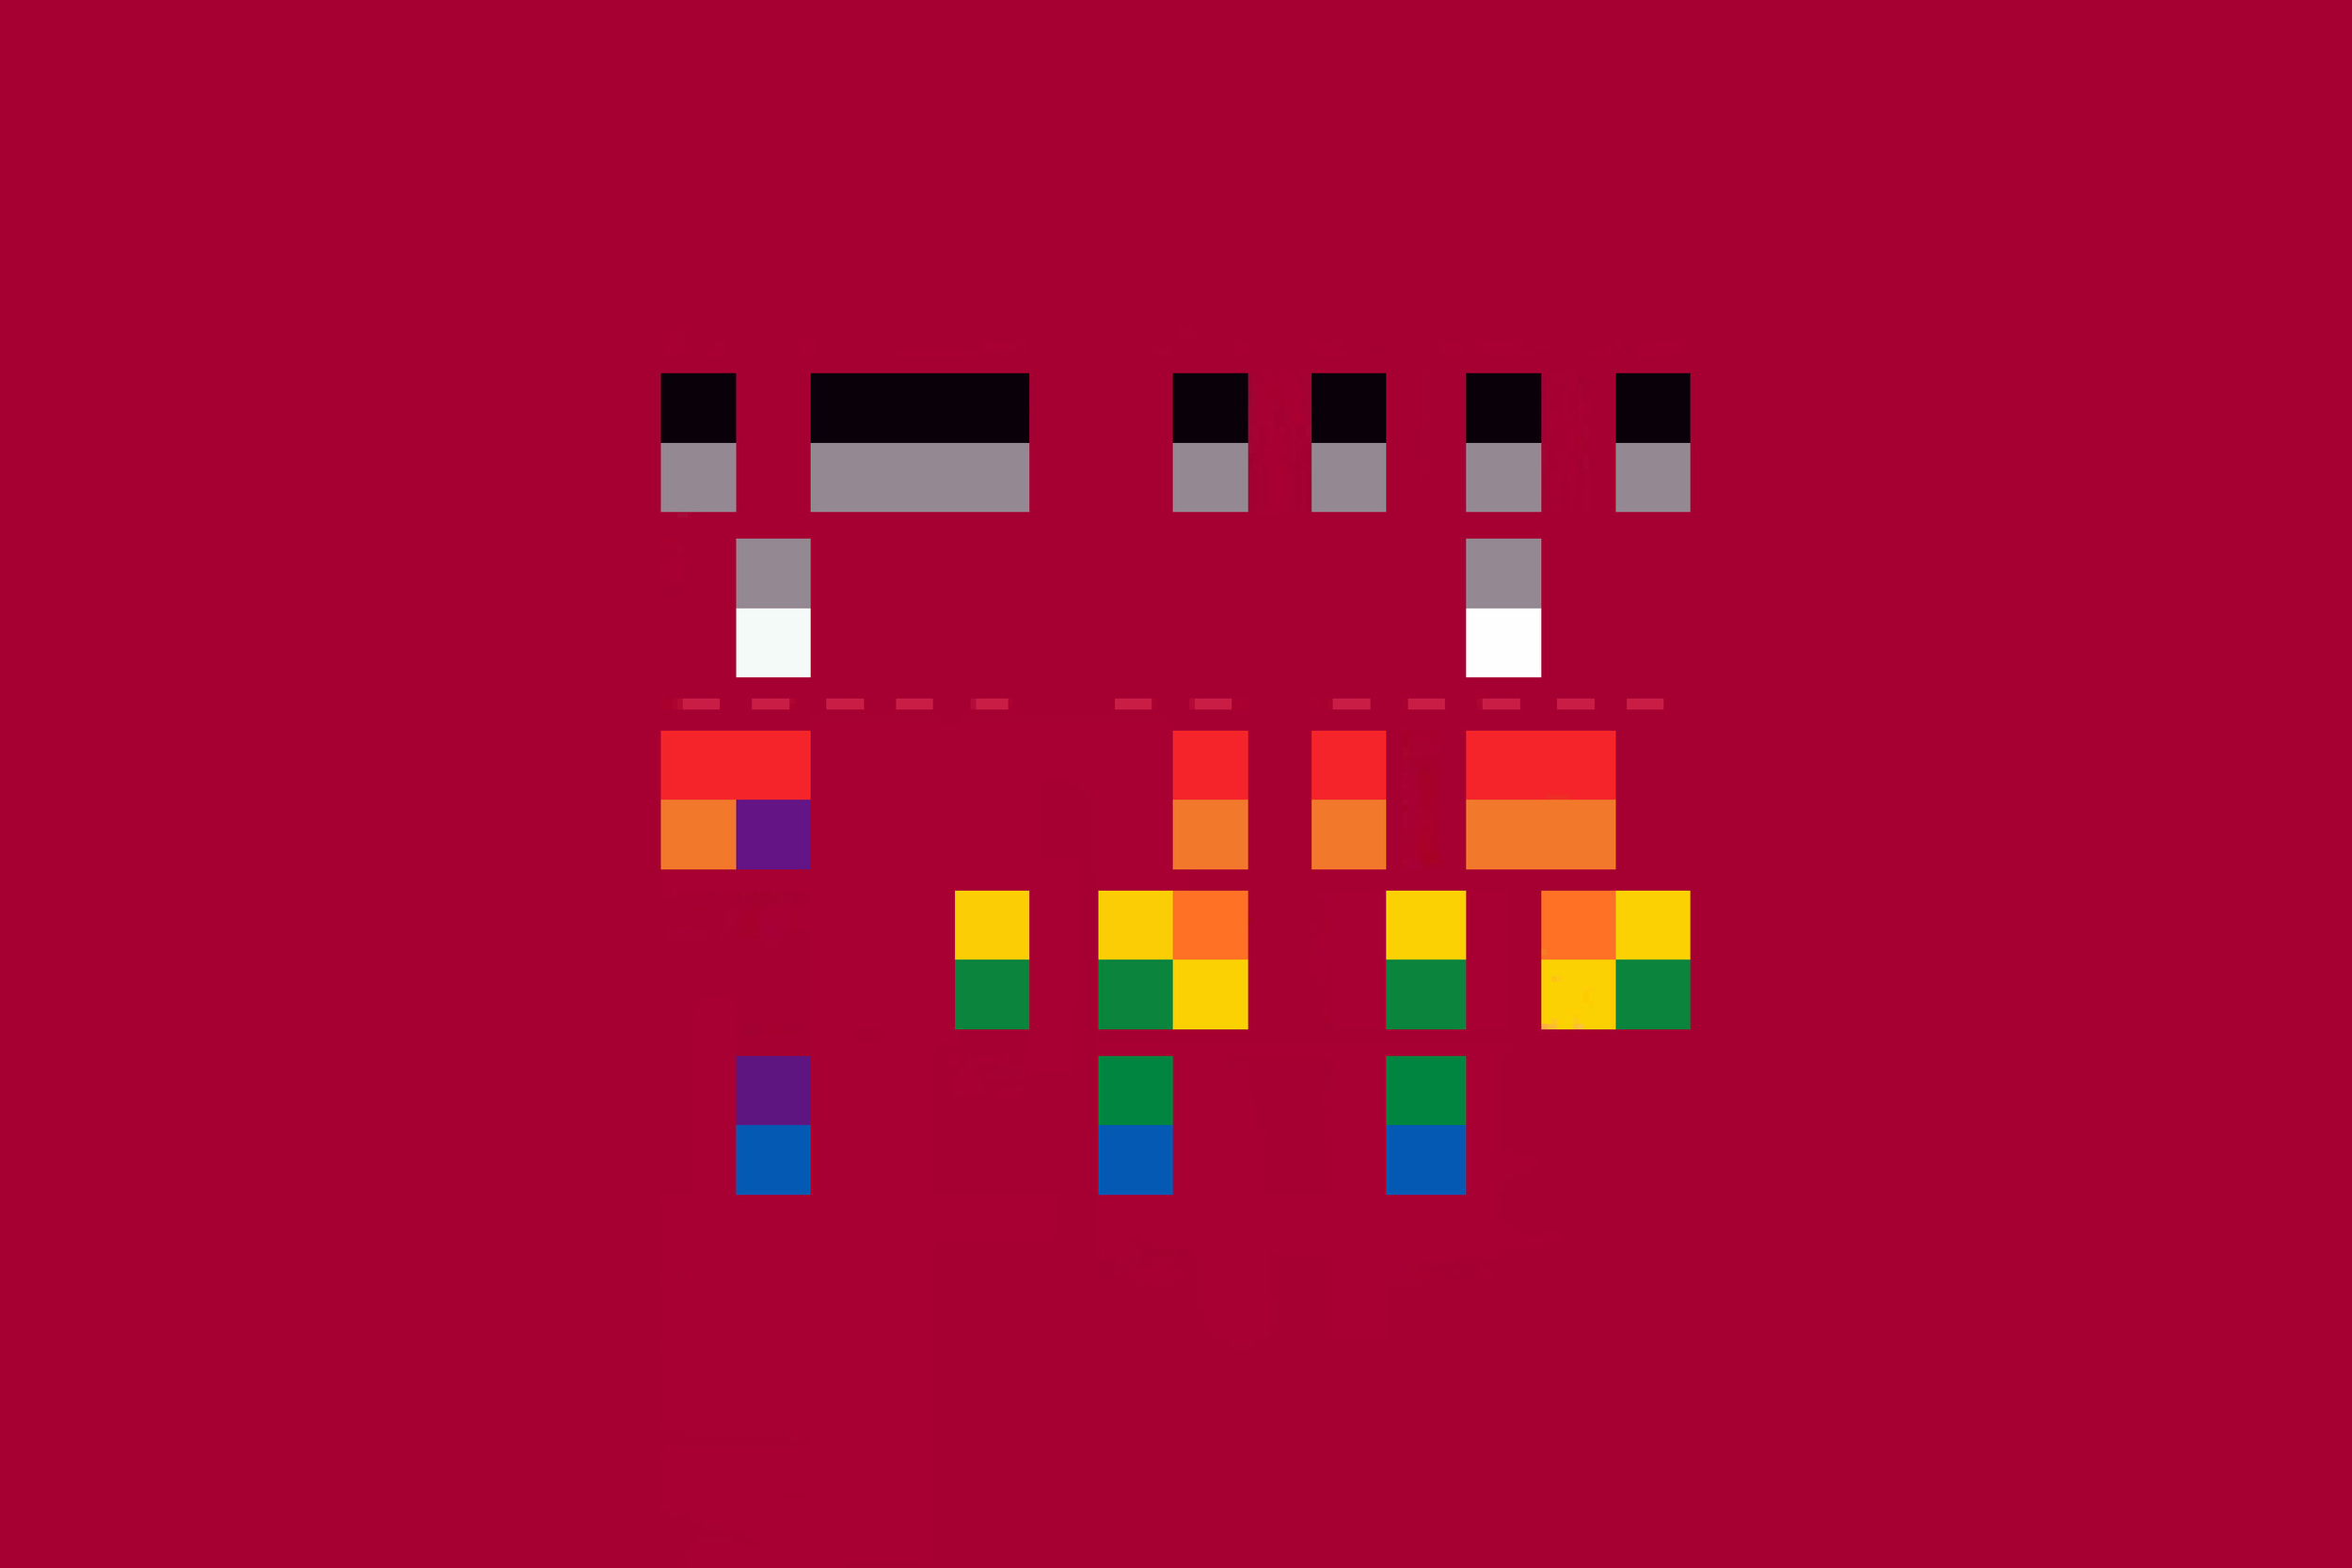 Coldplay's album artwork for their Speed of Sound single.